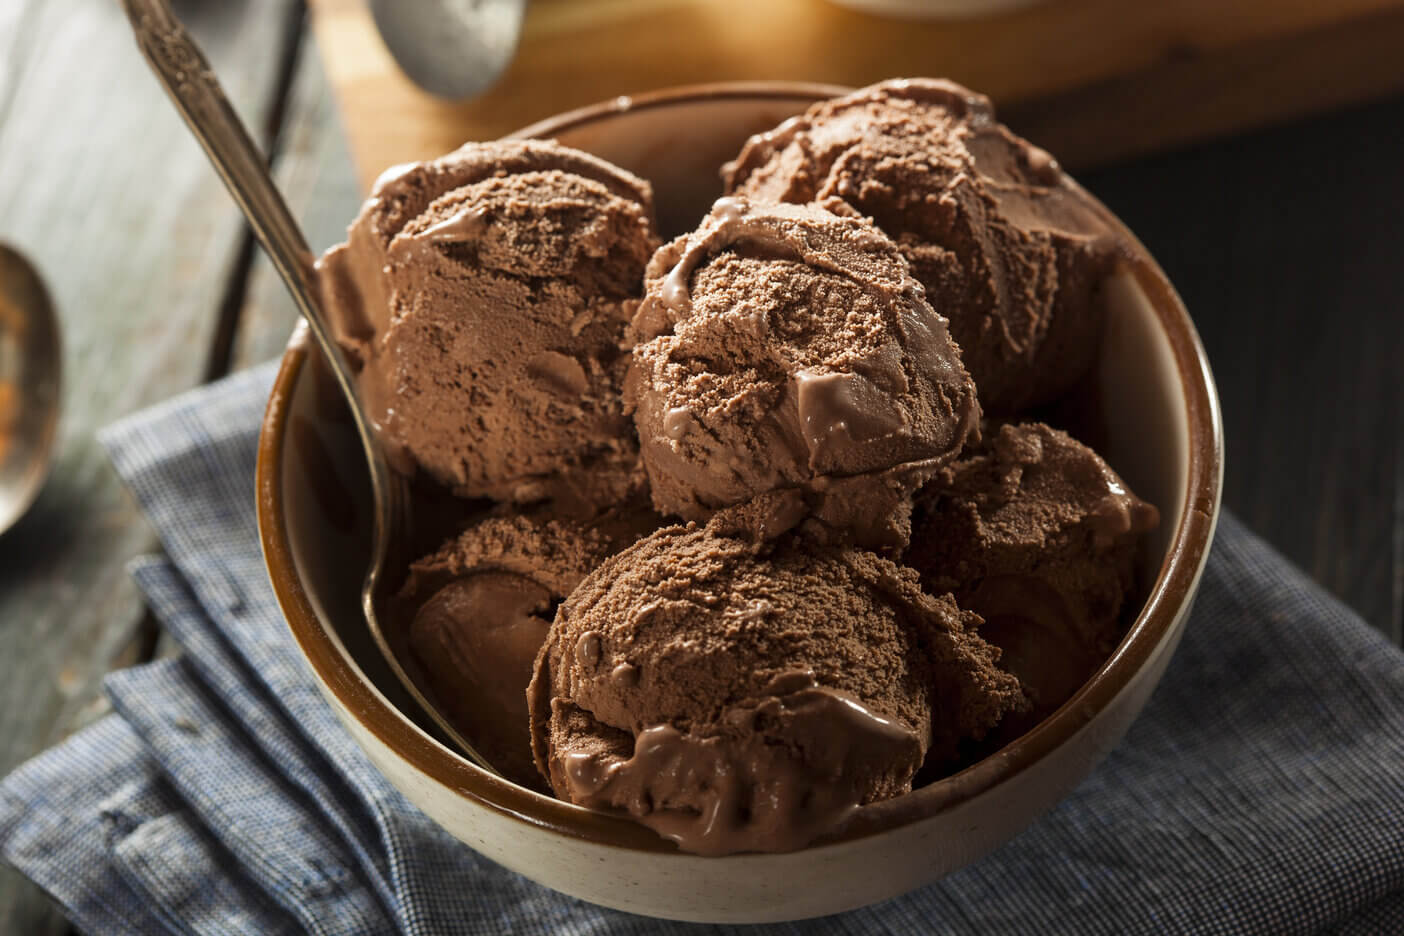 Creamy Chocolate Vegan Ice Cream Recipe